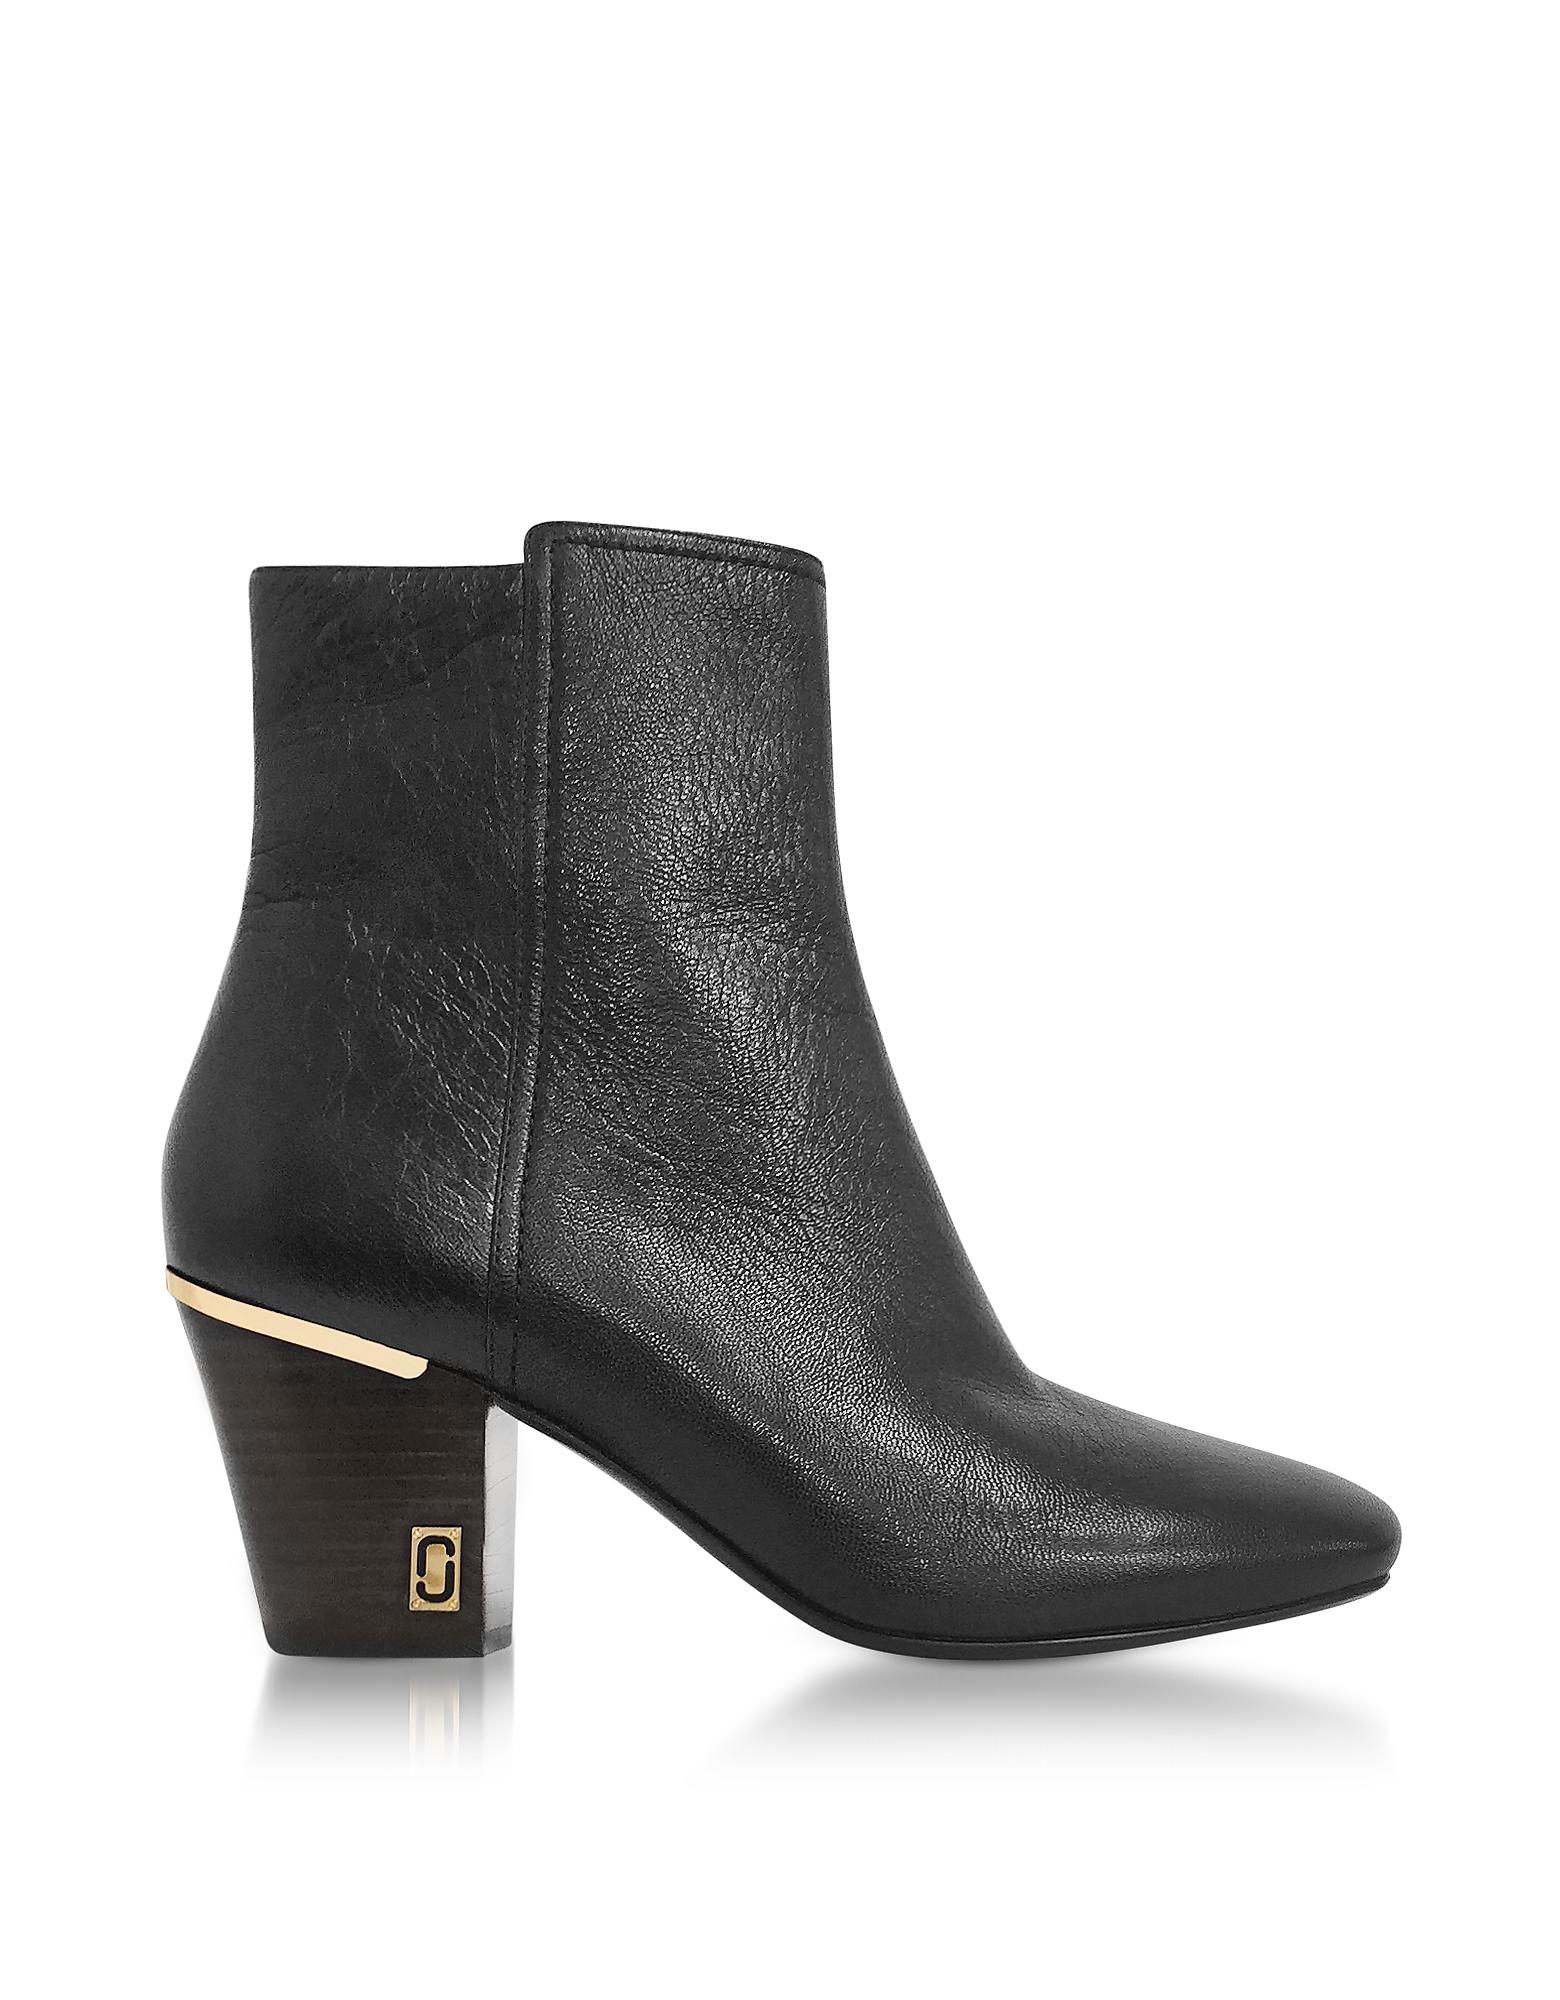 Marc Jacobs Bottines D'état Aria - Noir seUZG3I